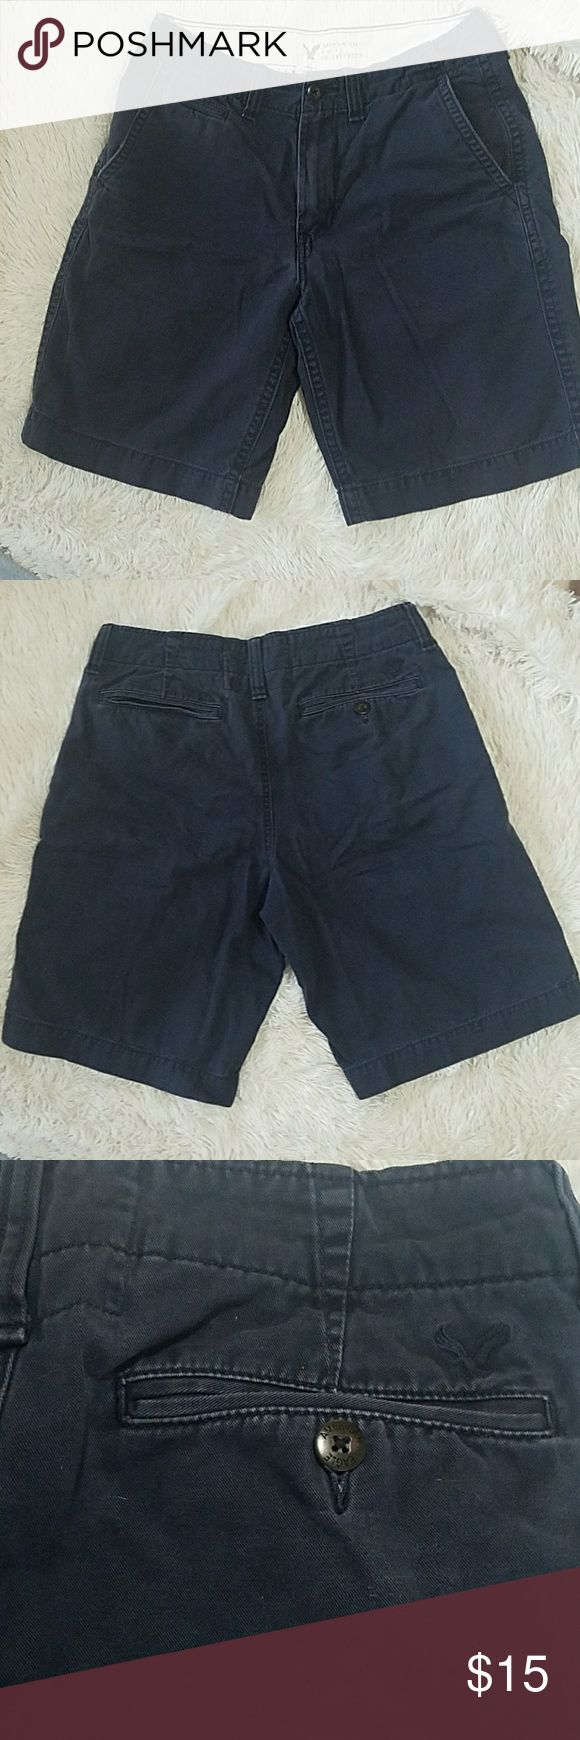 American Eagle Outfitter Mens Shorts Dark Blue Denim American Eagle Shorts with a Classic Length fitting. American Eagle Outfitters Shorts Jean Shorts